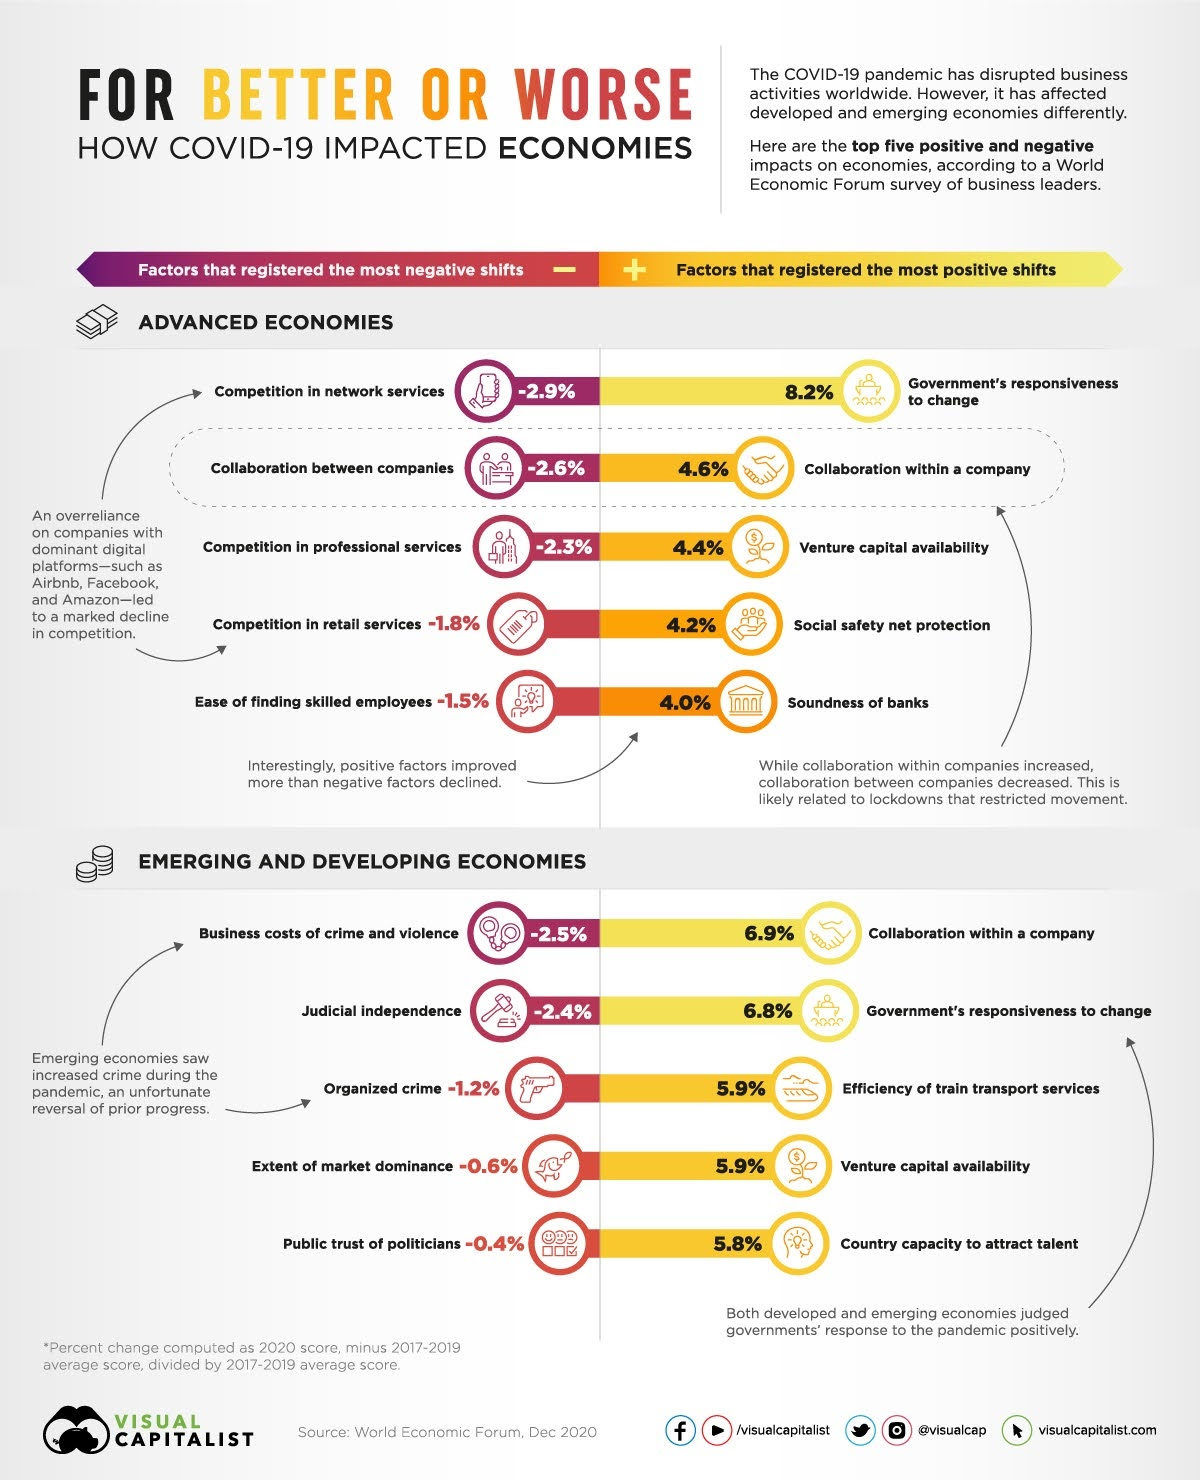 the-economic-impact-of-covid-19-according-to-business-leaders-infographic